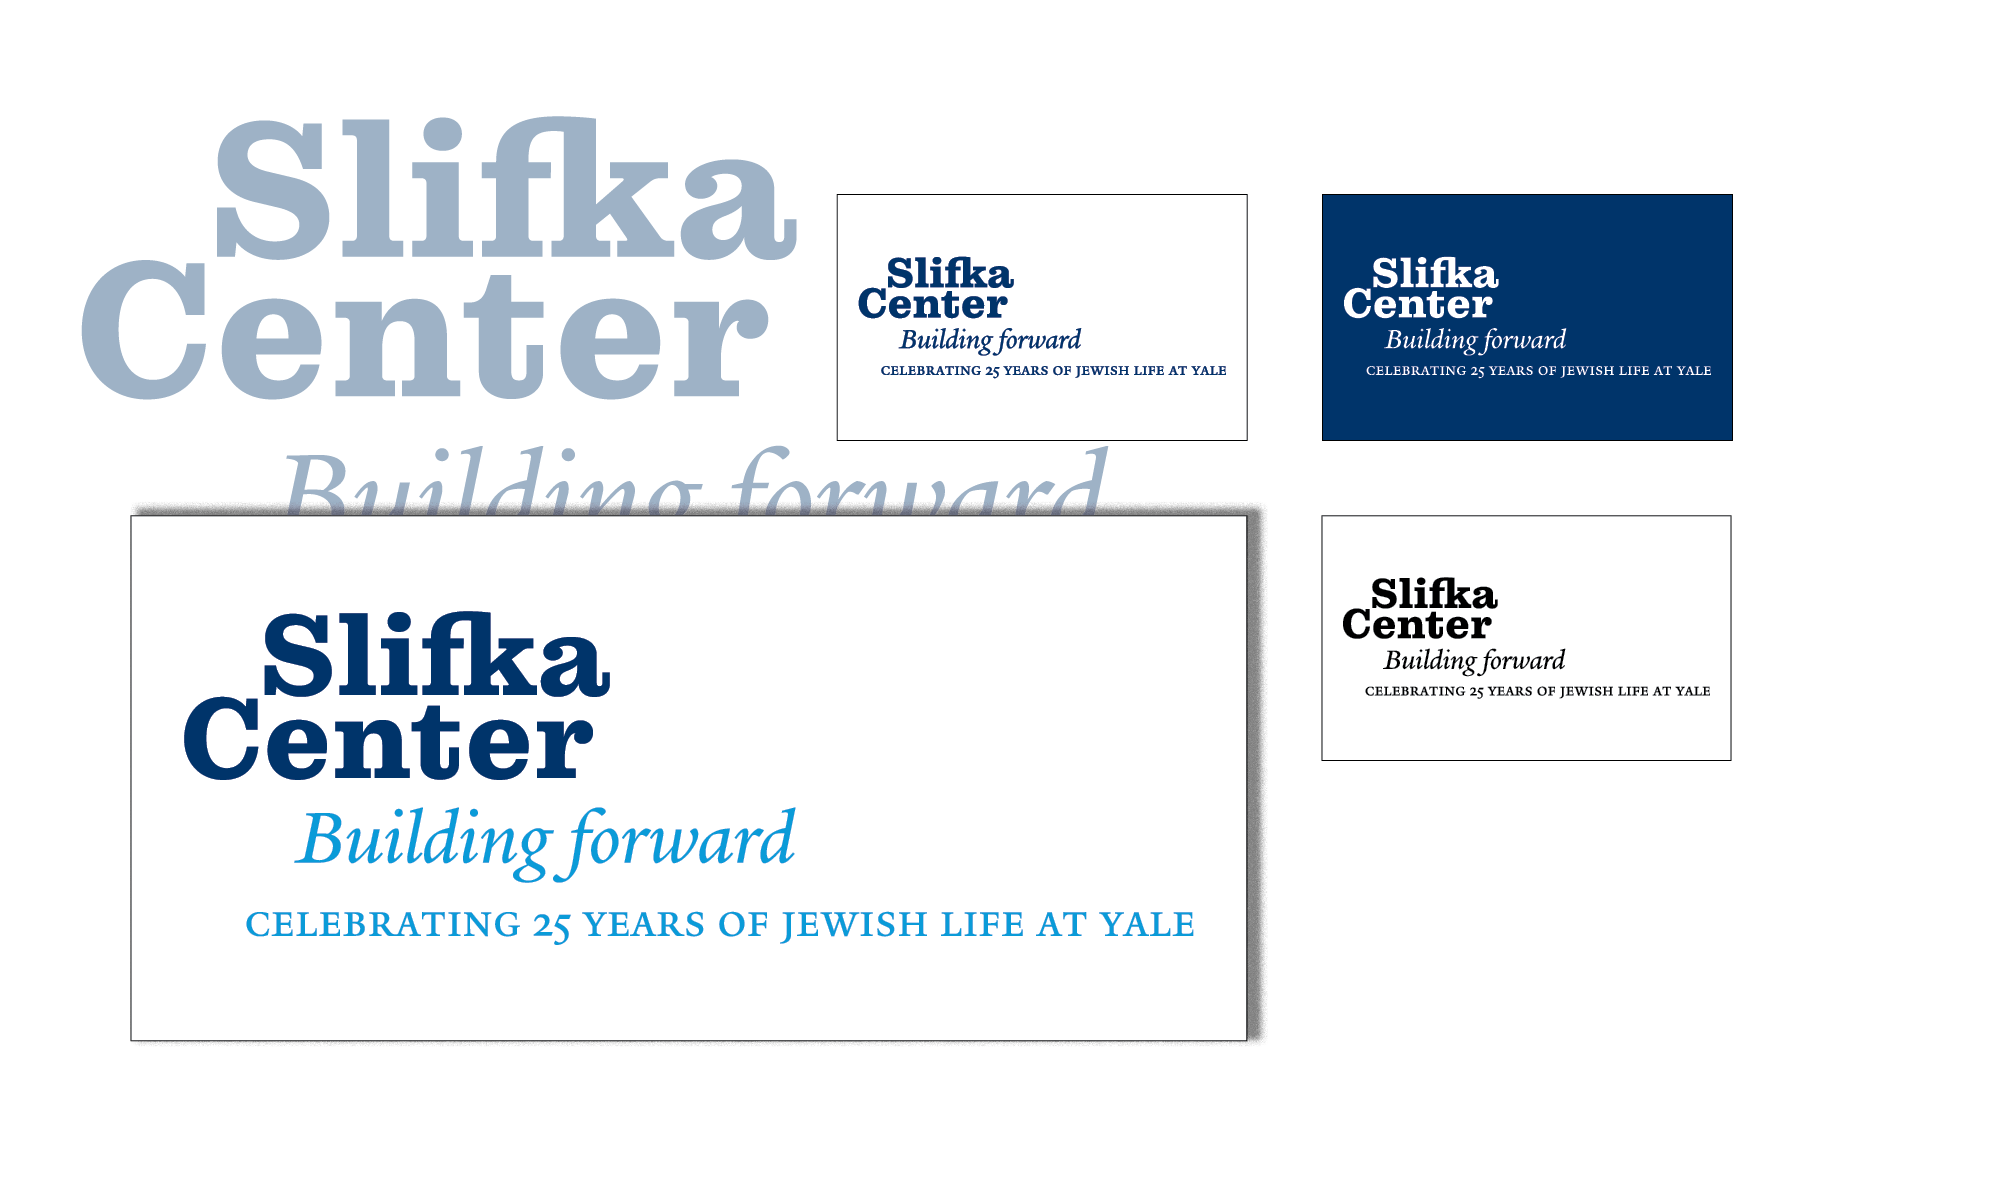 Slifka Center campaign logo